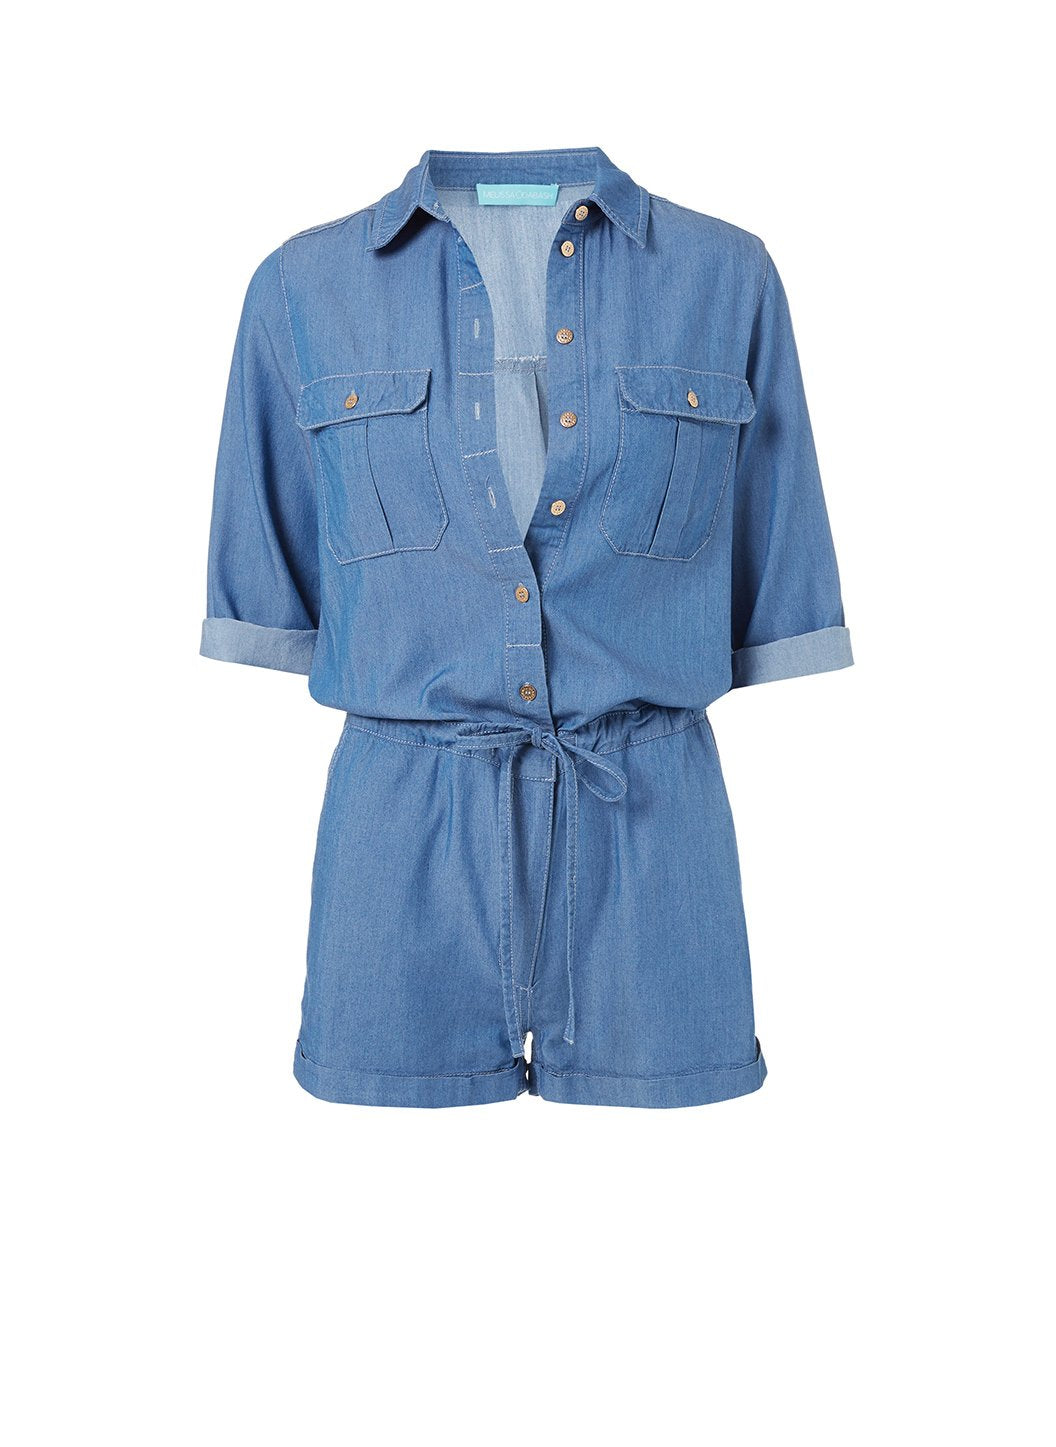 honour denim utility playsuit 2019